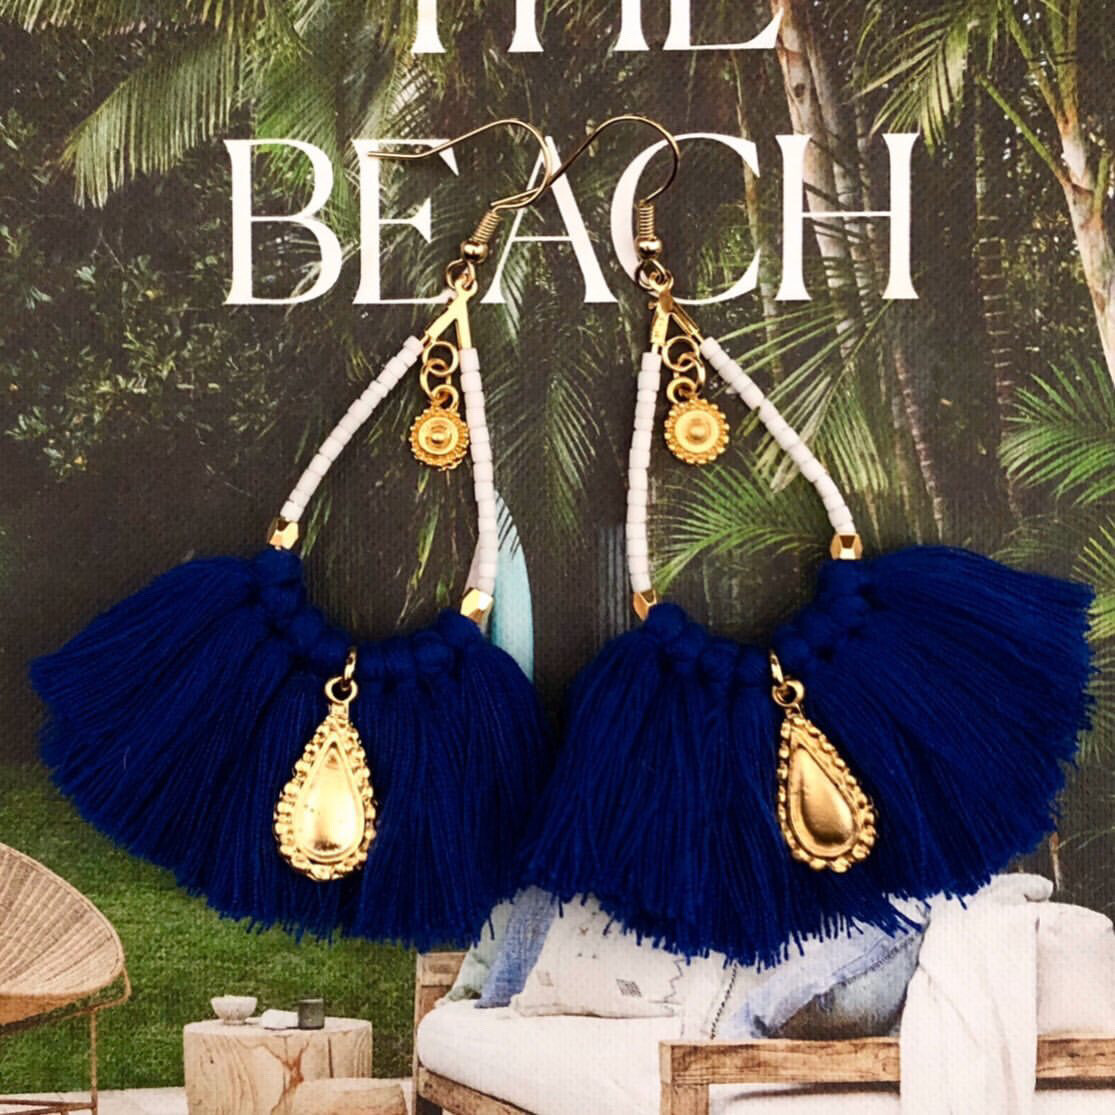 Lolita tassel earrings